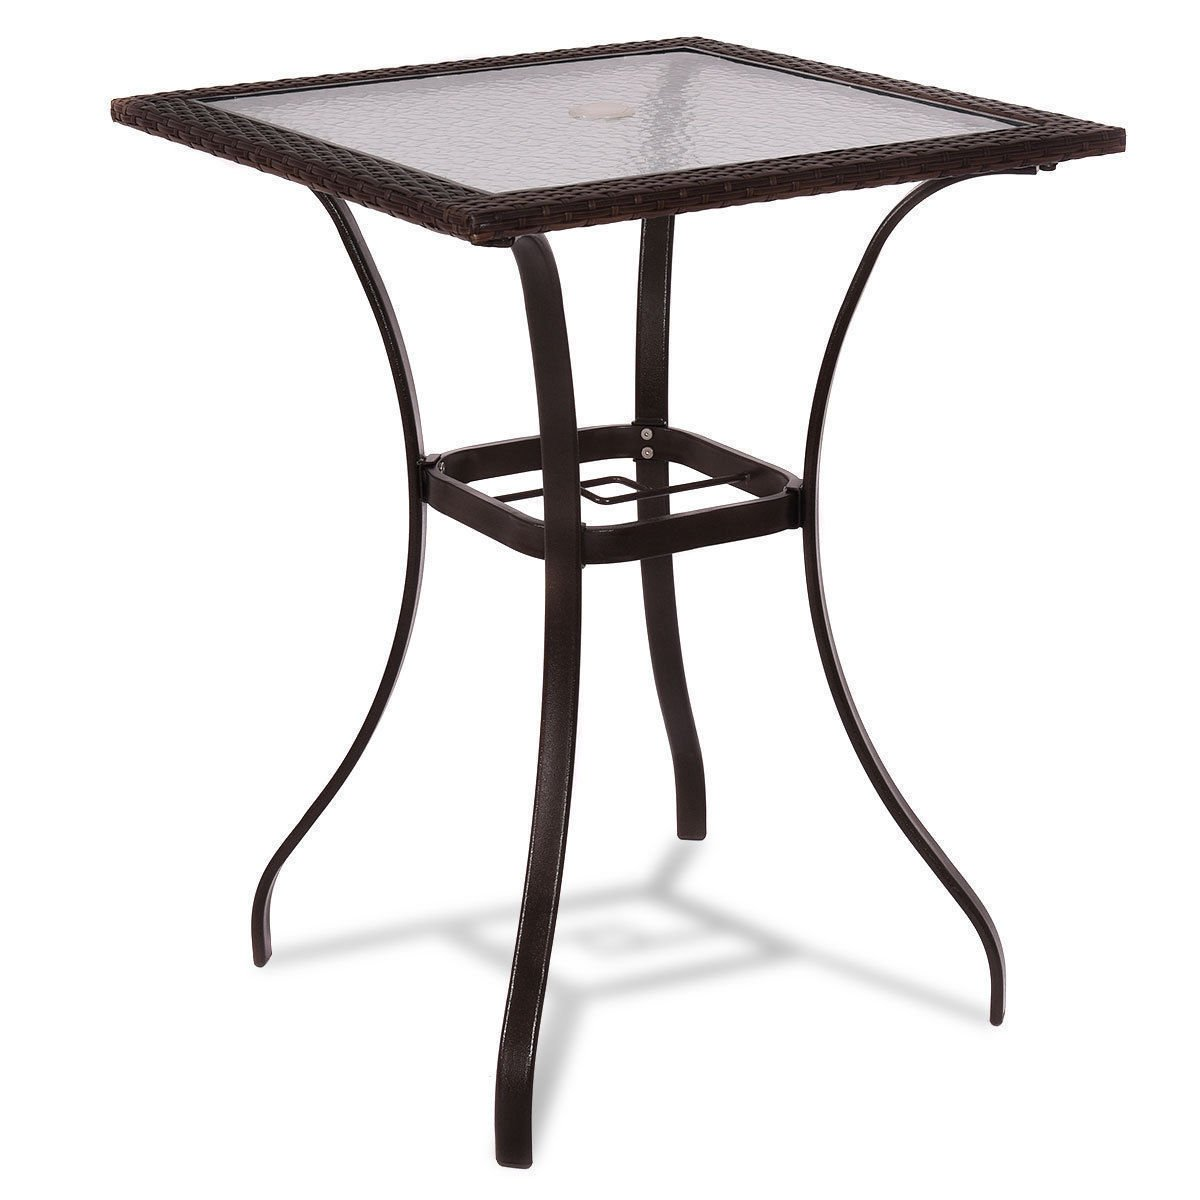 New Outdoor Patio Rattan Wicker Bar -Square Table Glass Top 28.5x28.5x37'' Yard Garden Furniture US -Fast Ship